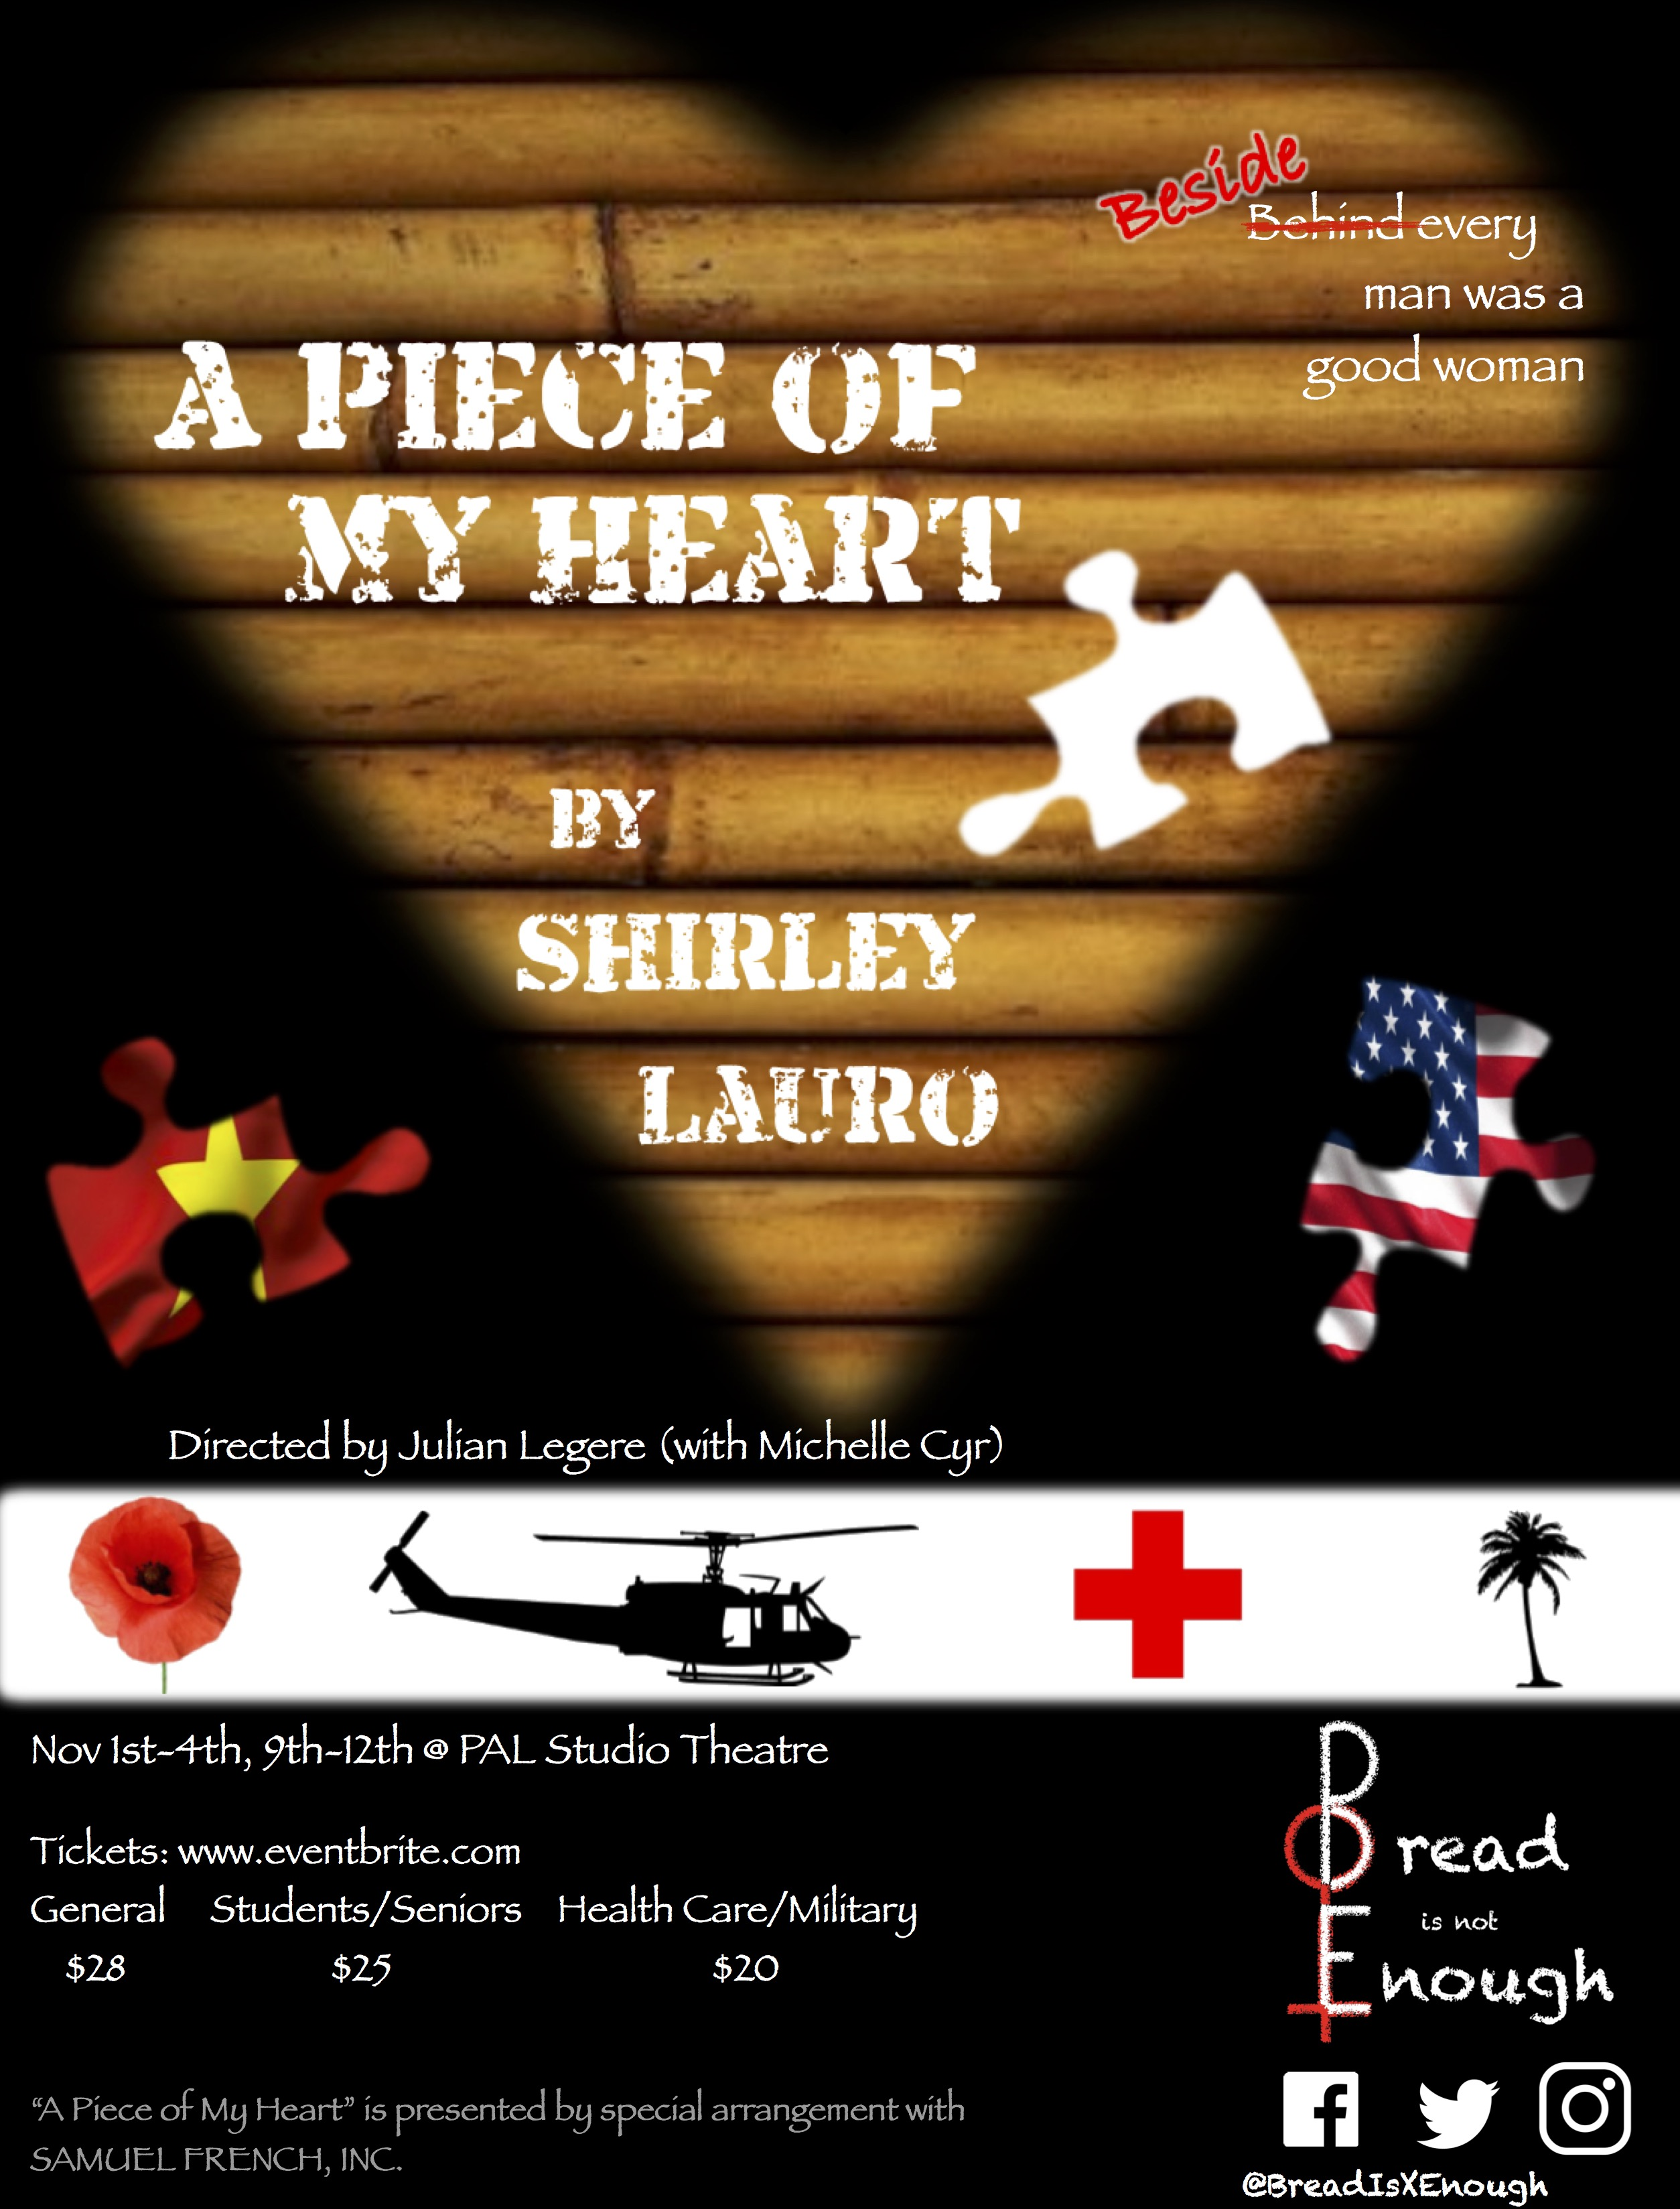 A Piece of My Heart by Shirley Lauro Nov 1-12 PAL Theatre